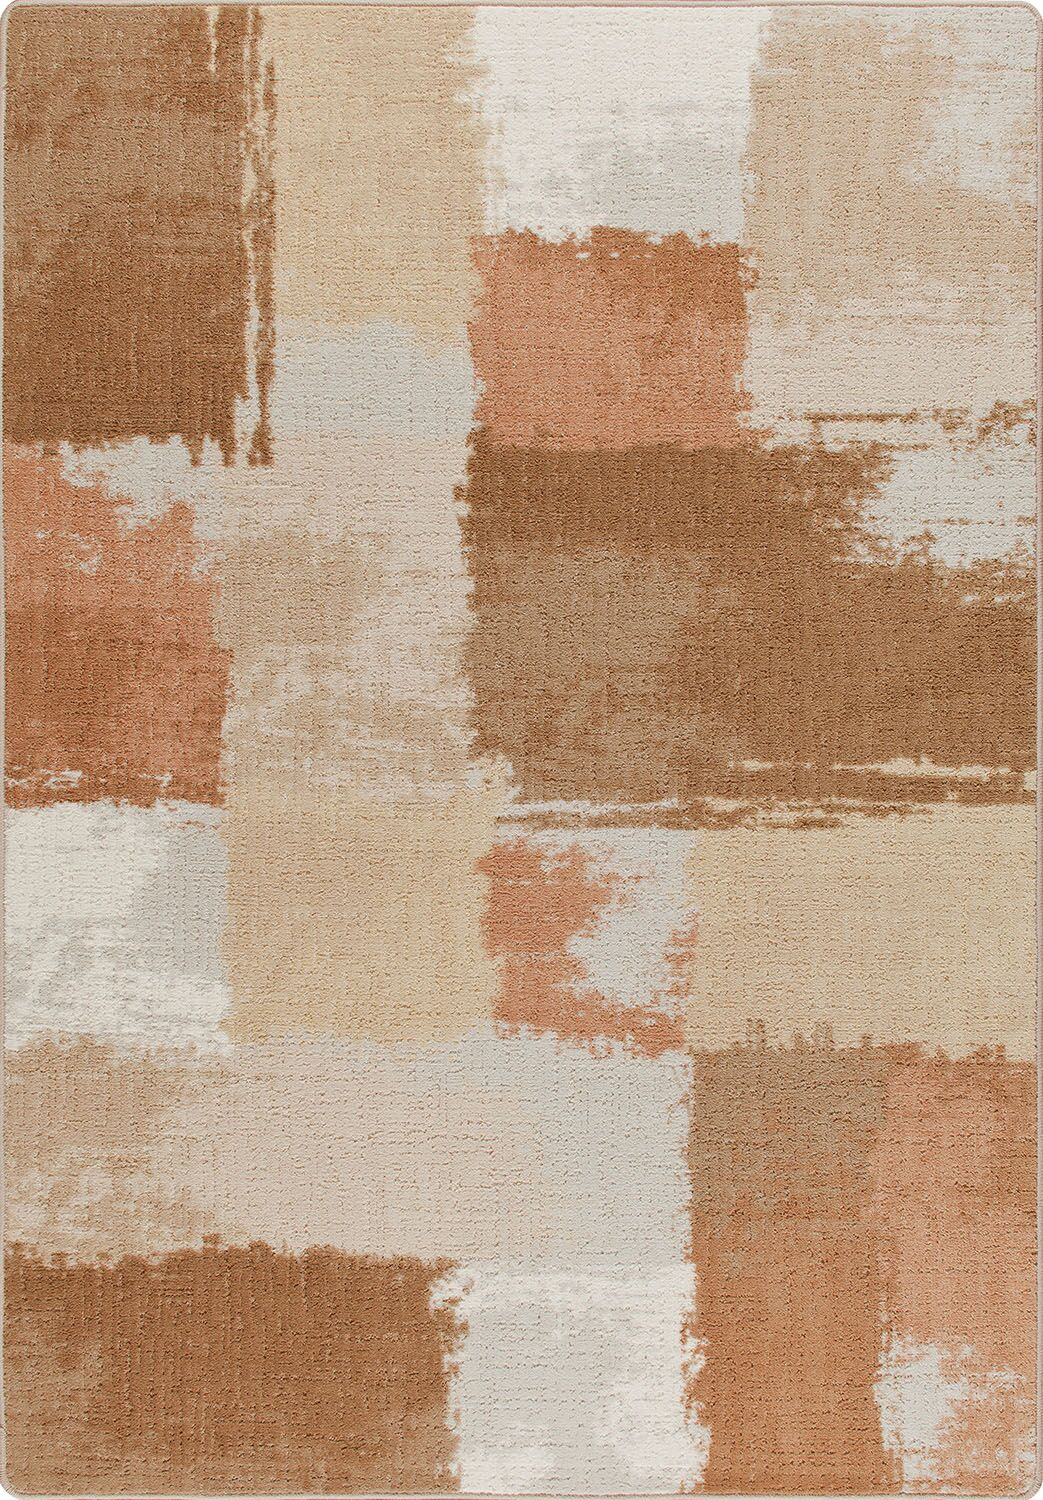 Mix and Mingle Canyon Fair And Square Rug Rug Size: Rectangle 7'8